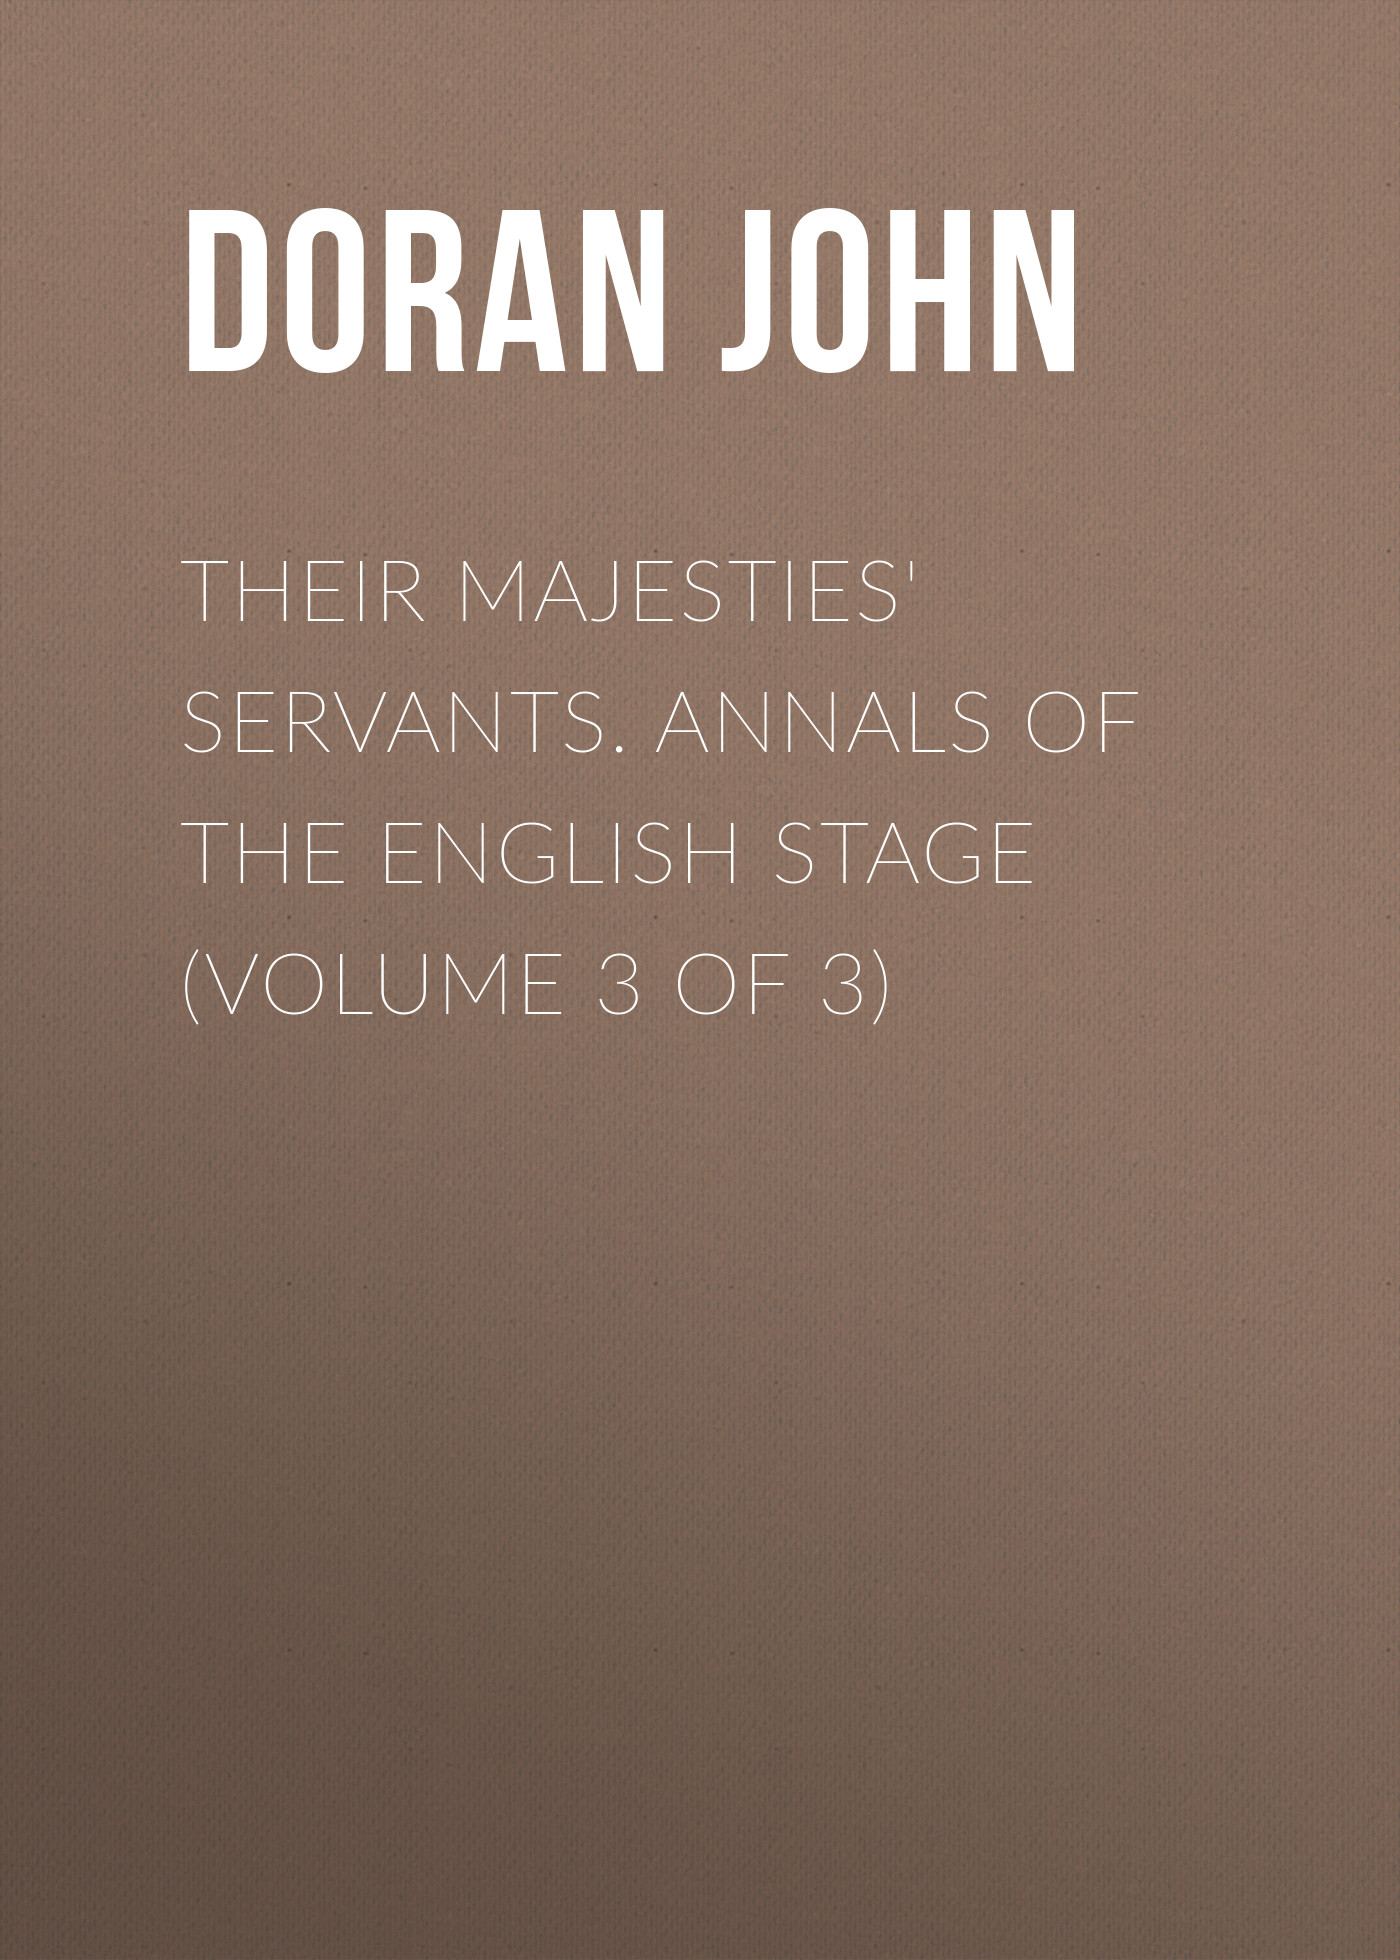 Doran John Their Majesties' Servants. Annals of the English Stage (Volume 3 of 3) doran john their majesties servants annals of the english stage volume 2 of 3